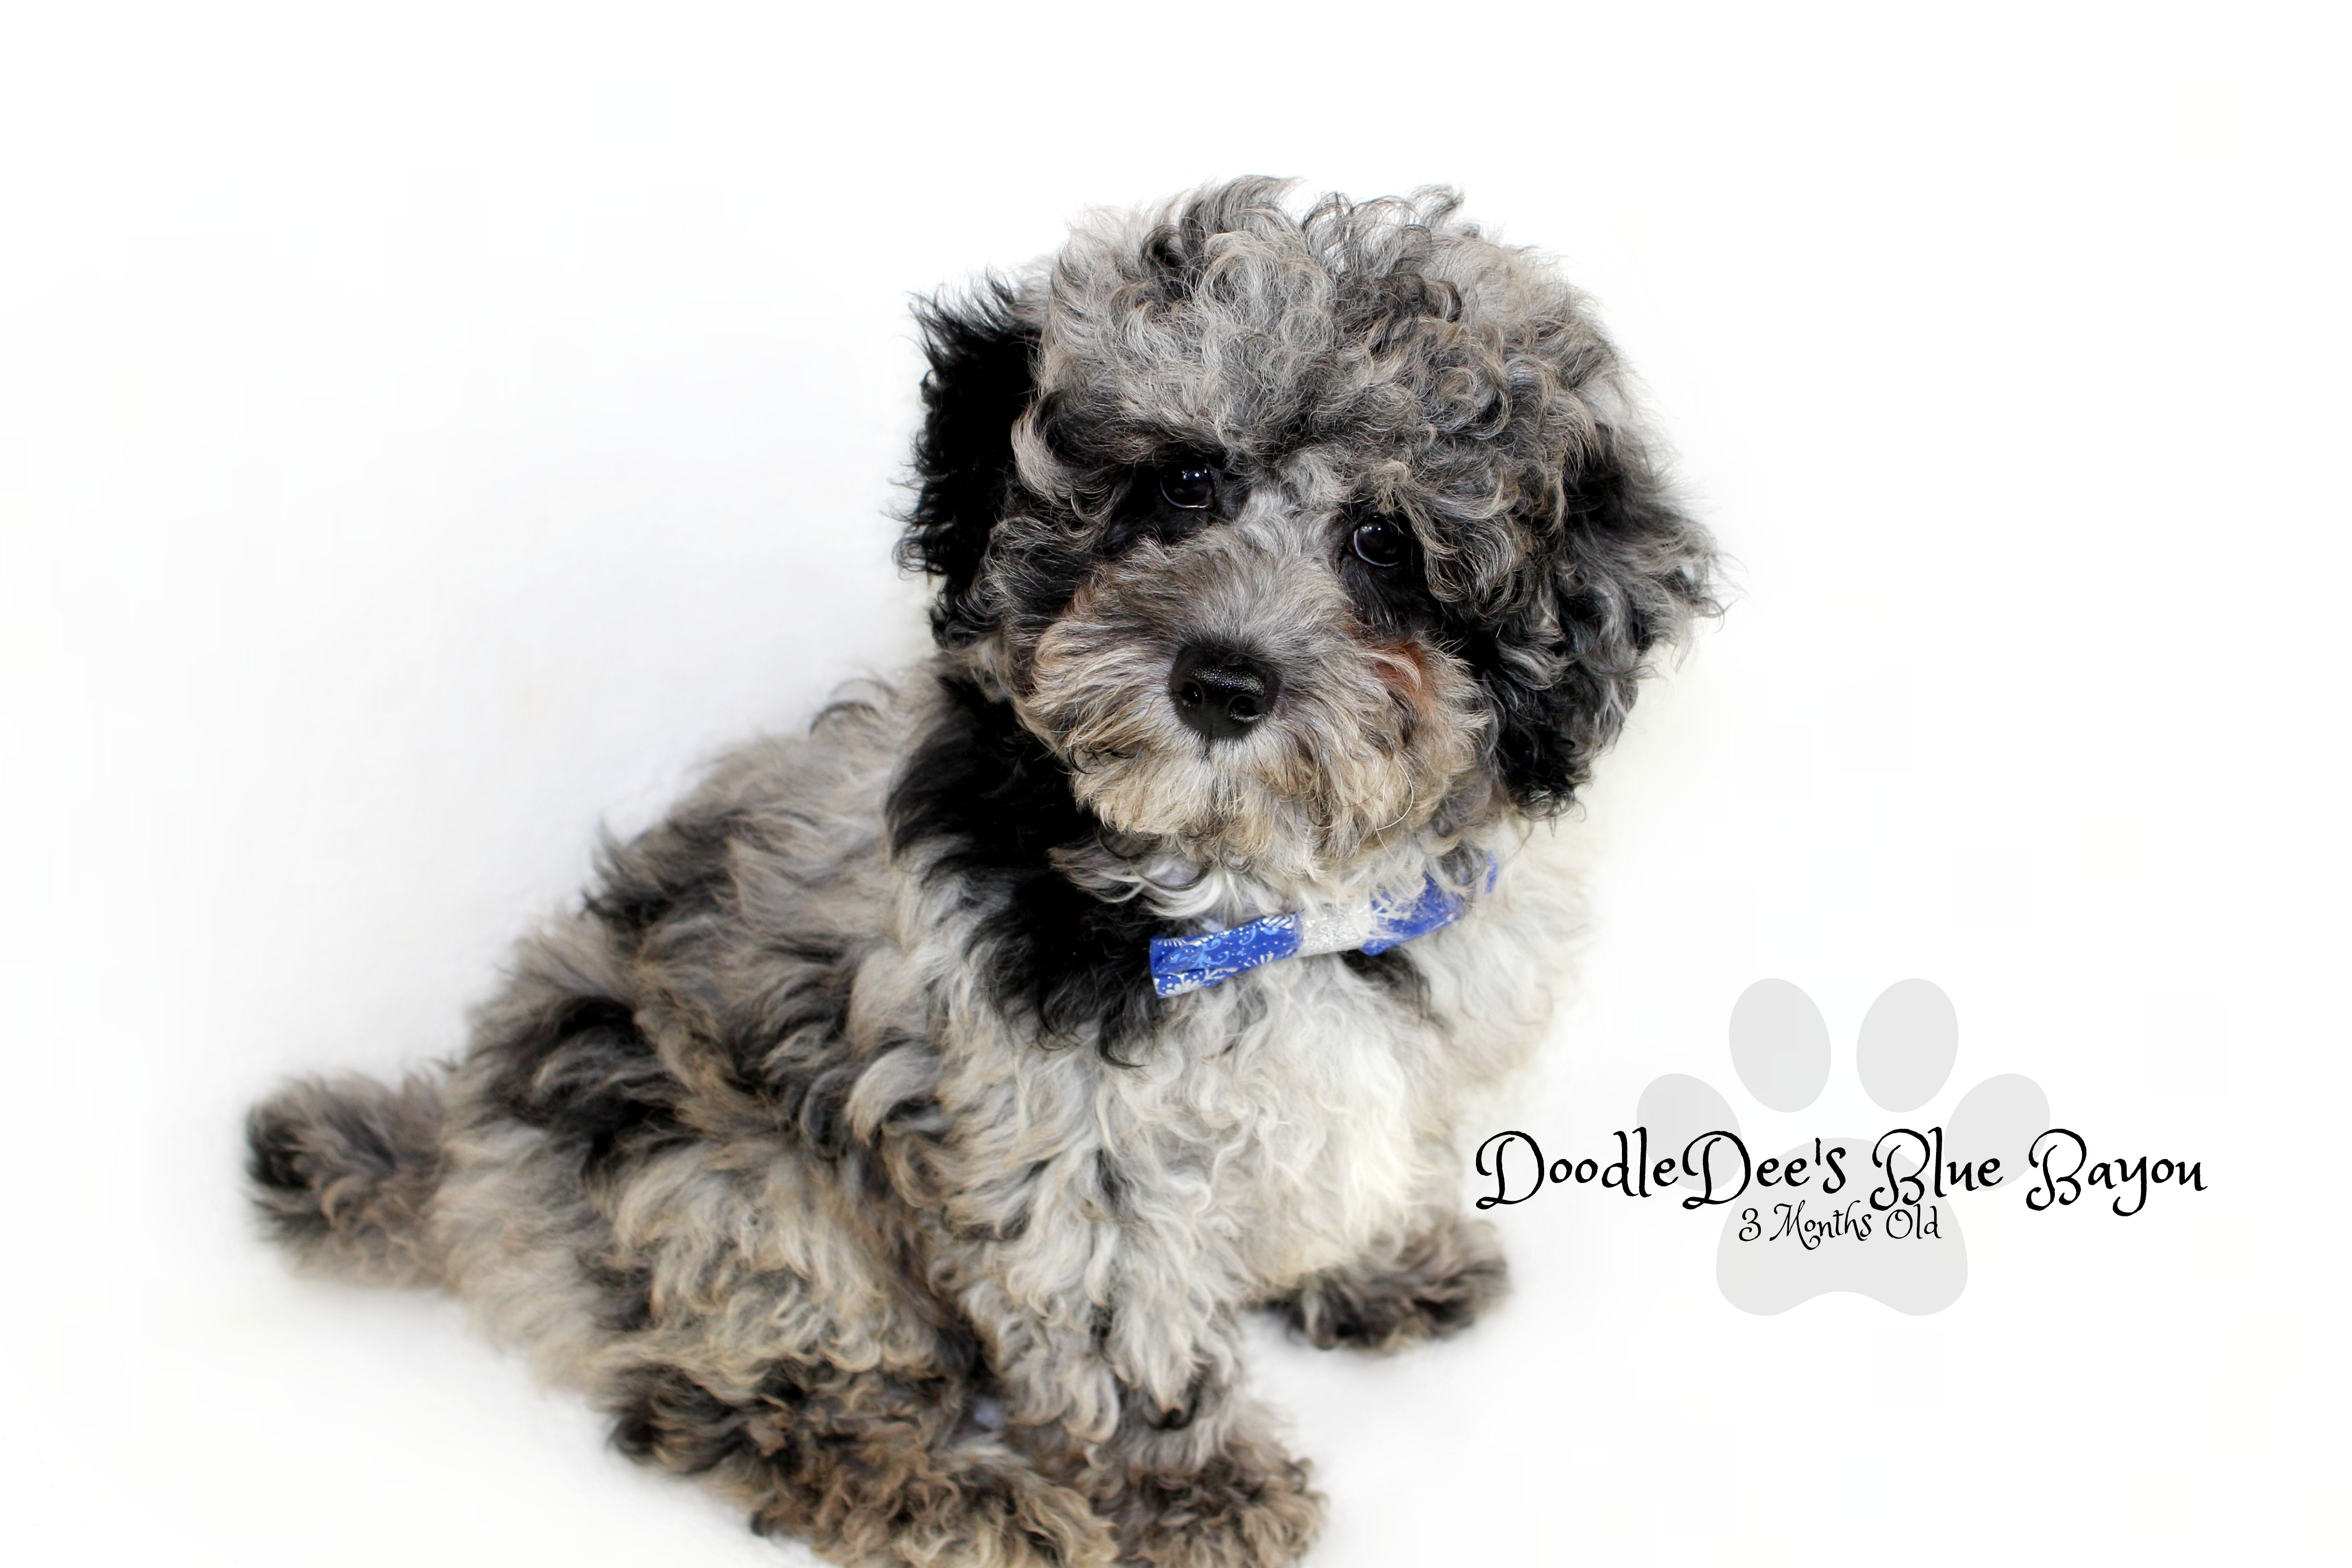 Blue The Blue Merle Mini Poodle He Is Going To Make Fabulous